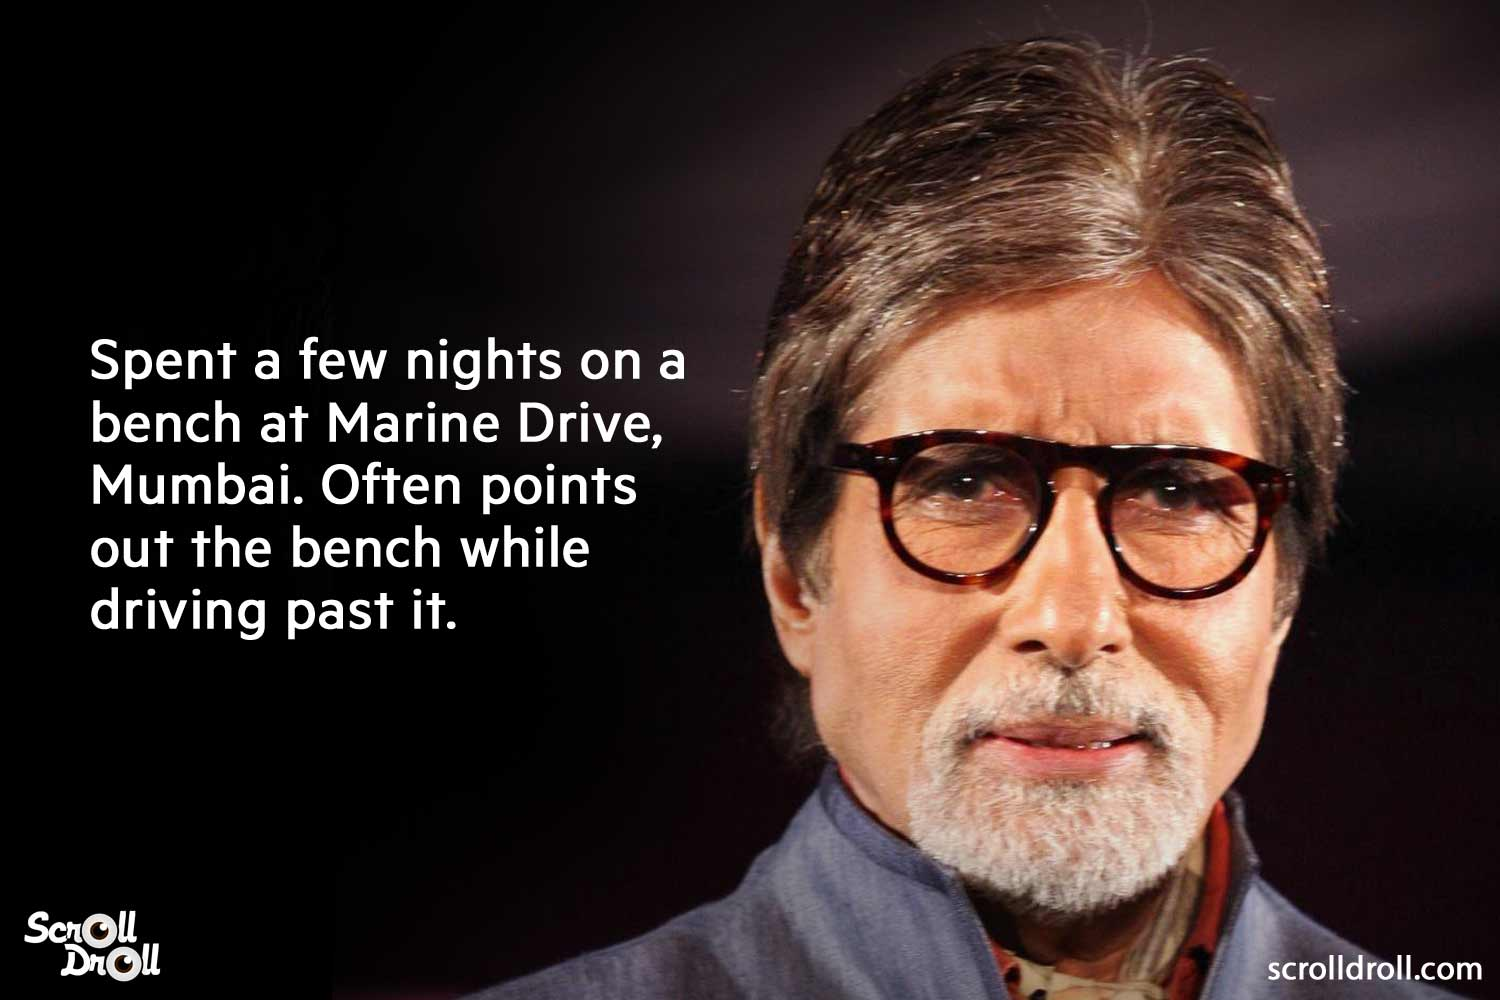 spent a few nights on a bench at marine drive. often points out the bench while driving past it-amitabh bachchan facts